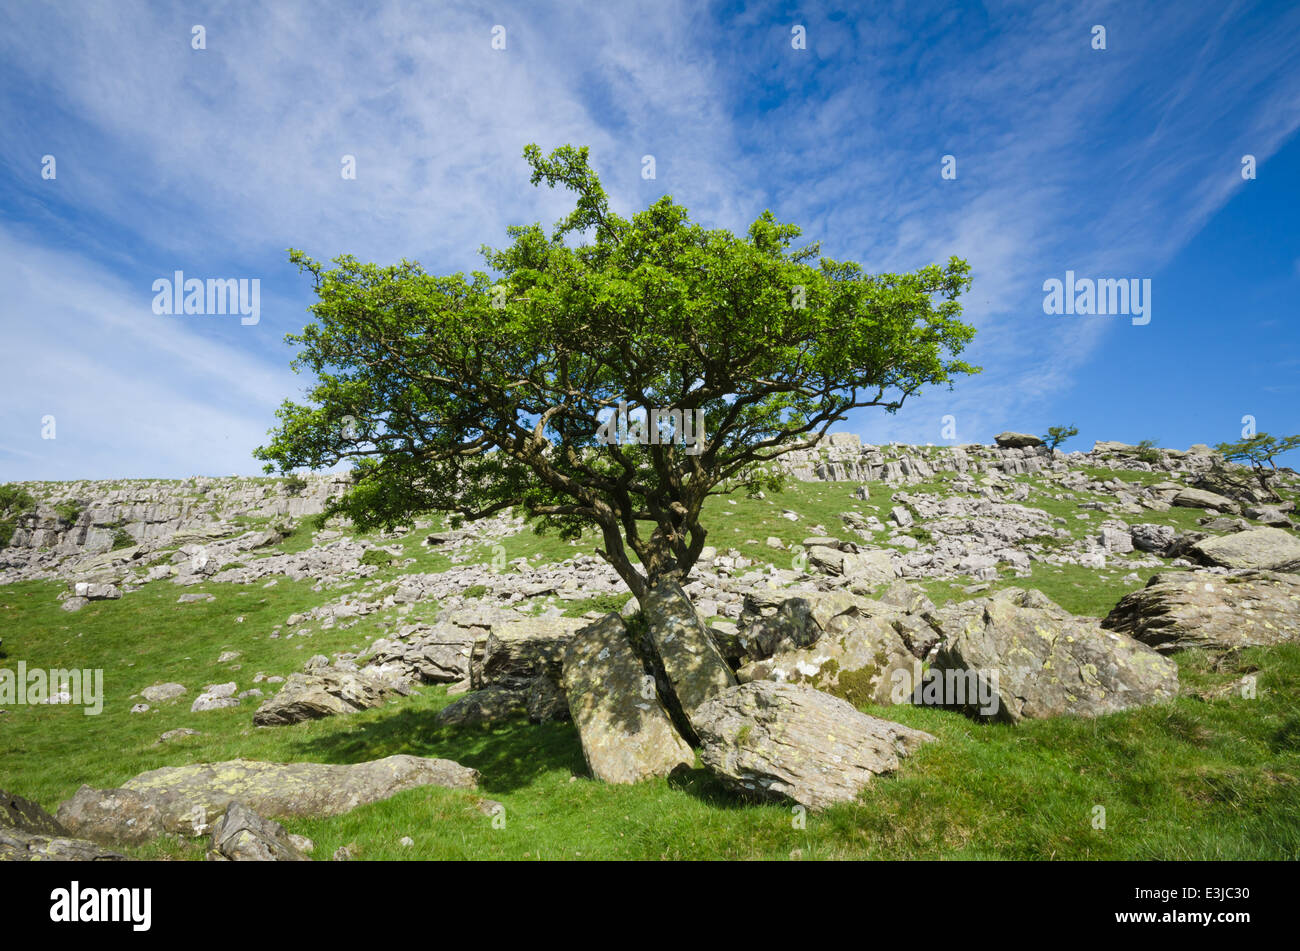 Hawthorn tree on rocks - Stock Image